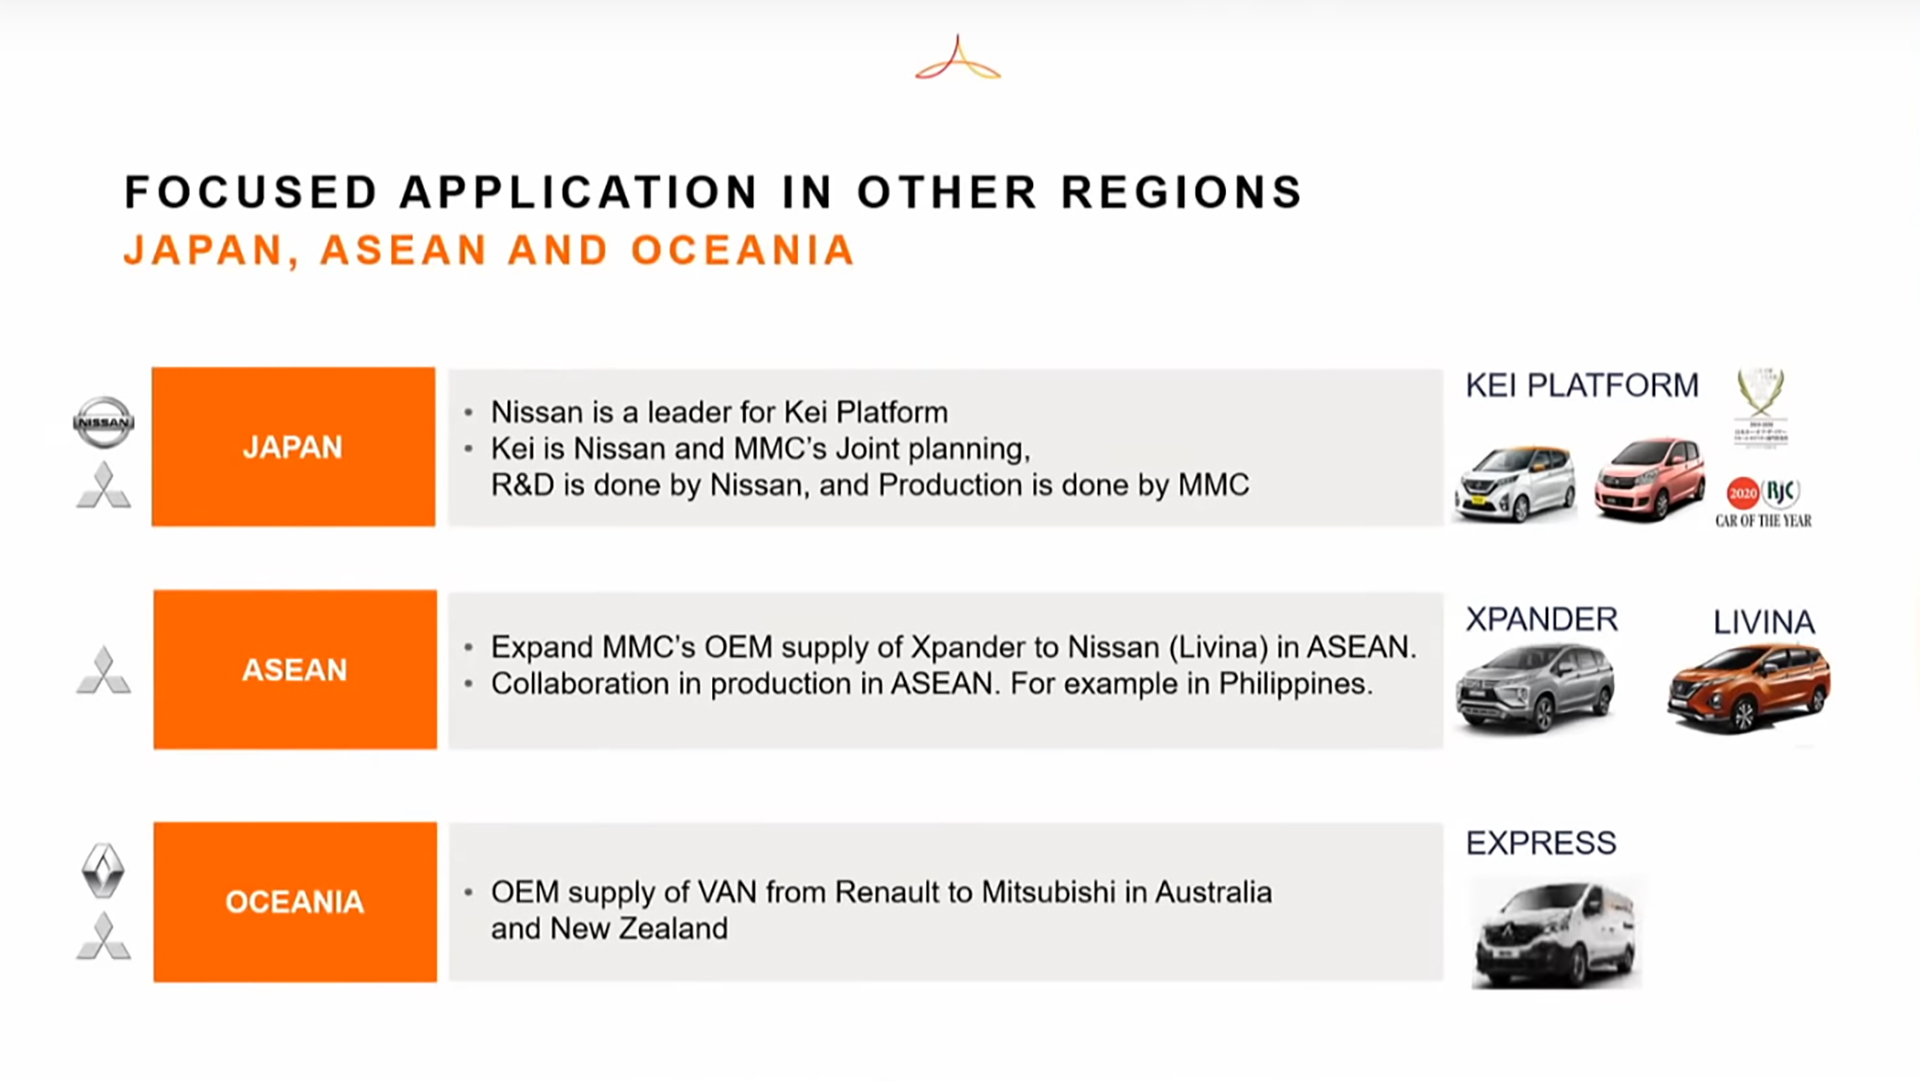 Alliance Renault Nissan Mitsubishi - 2020 - Alliance new cooperation business model - products - Japan - ASEAN - OCEANIA